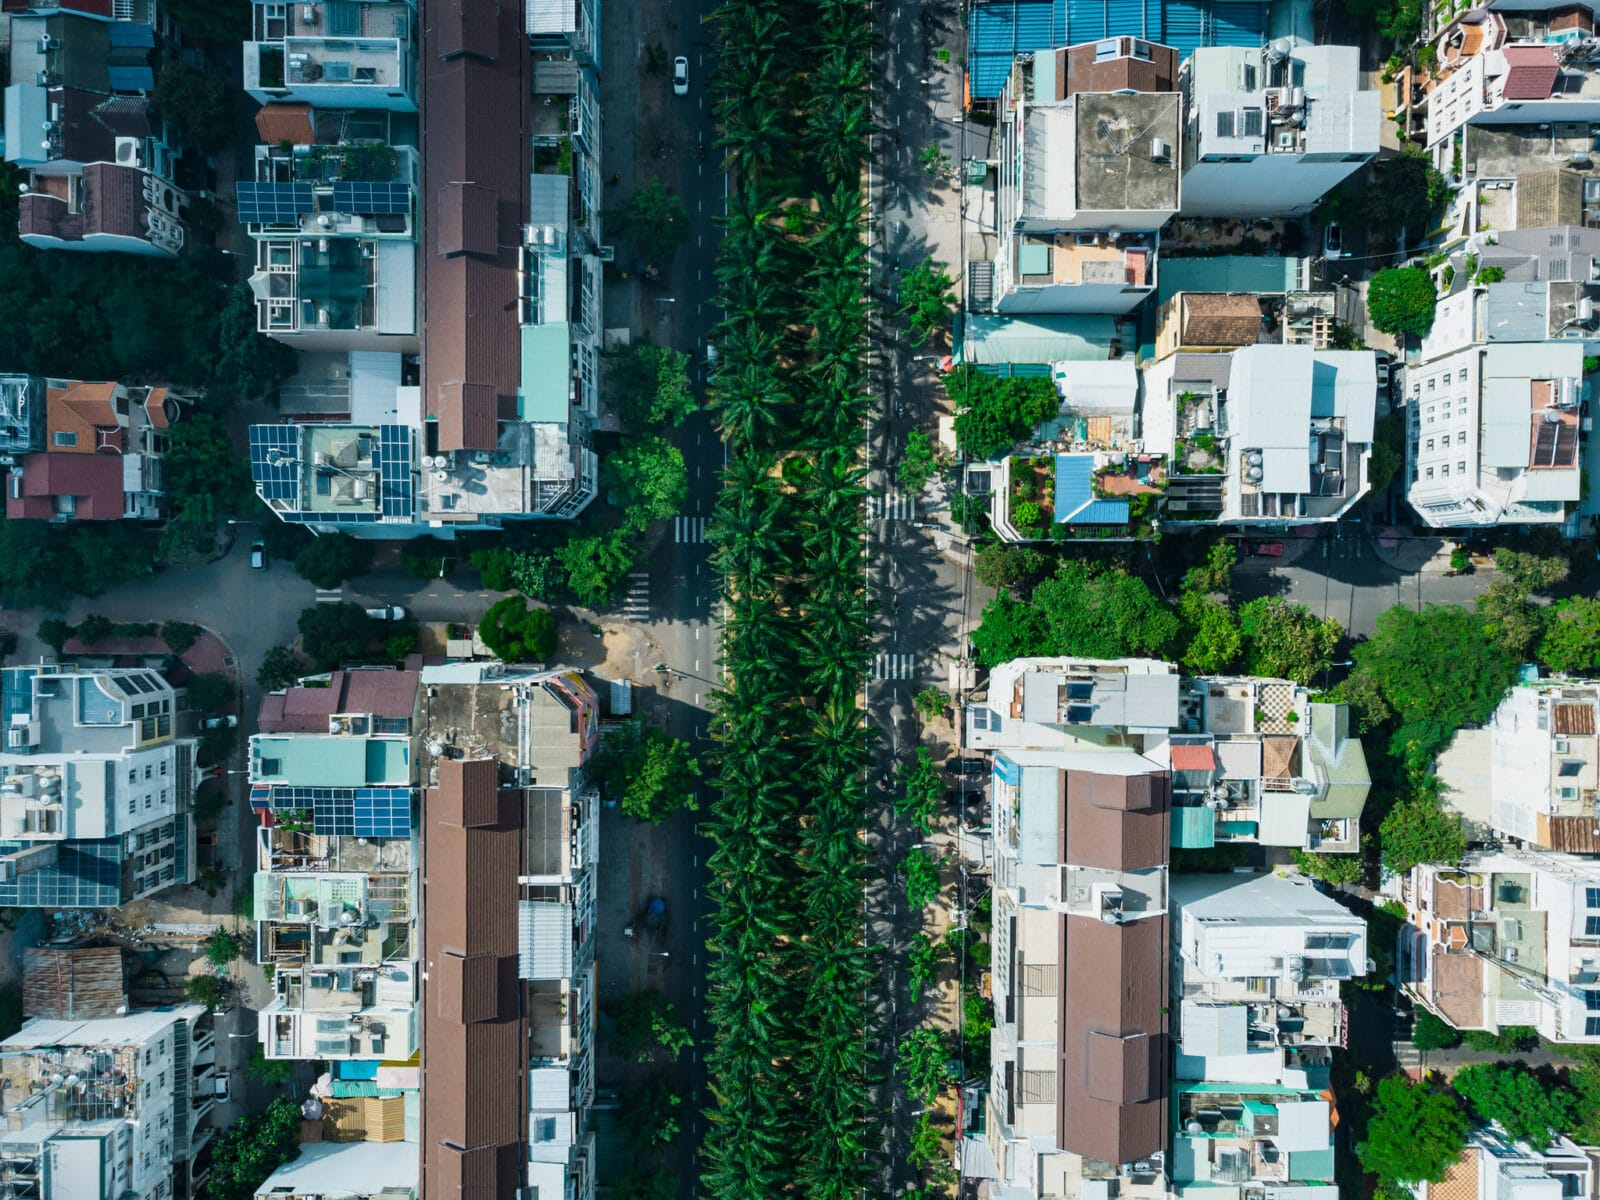 Image from a drone looking down at the residential area's in HCMC's district 8 in Vietnam